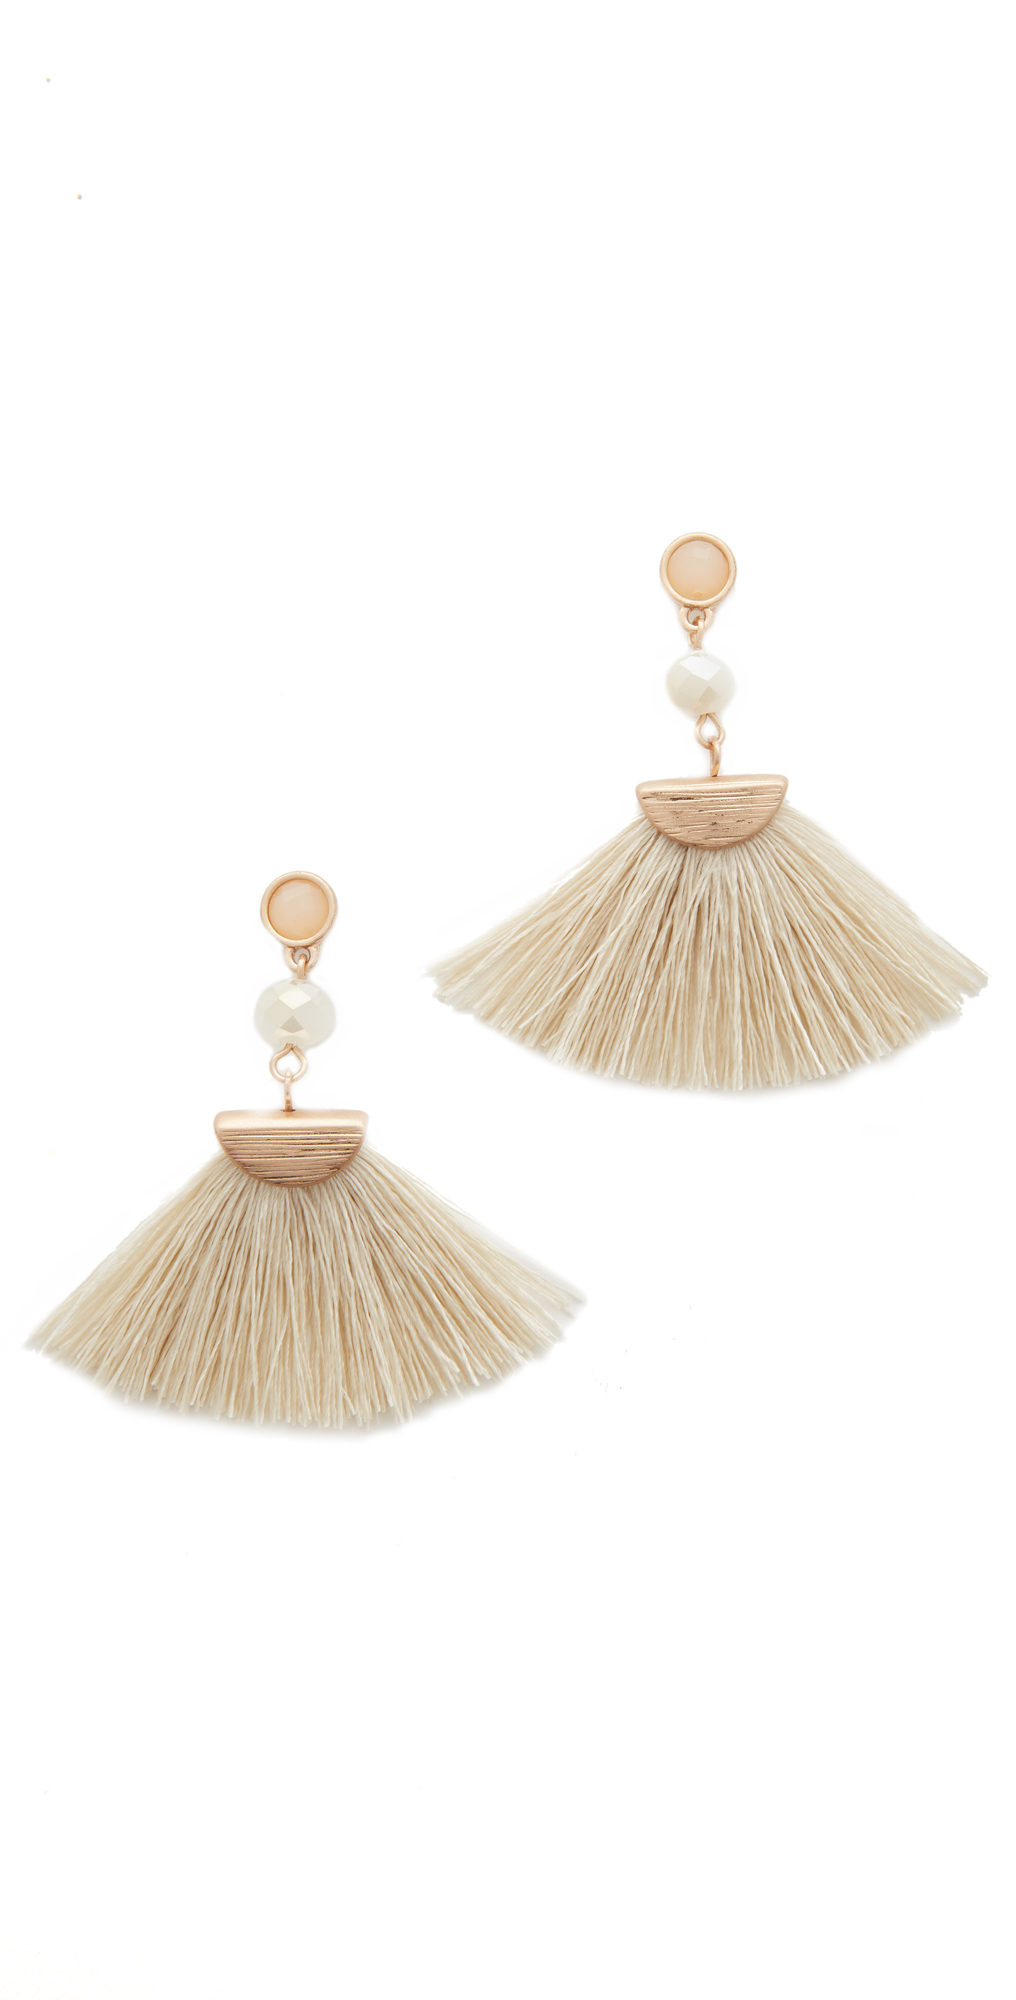 Mia Tassel Fan Earrings Shashi